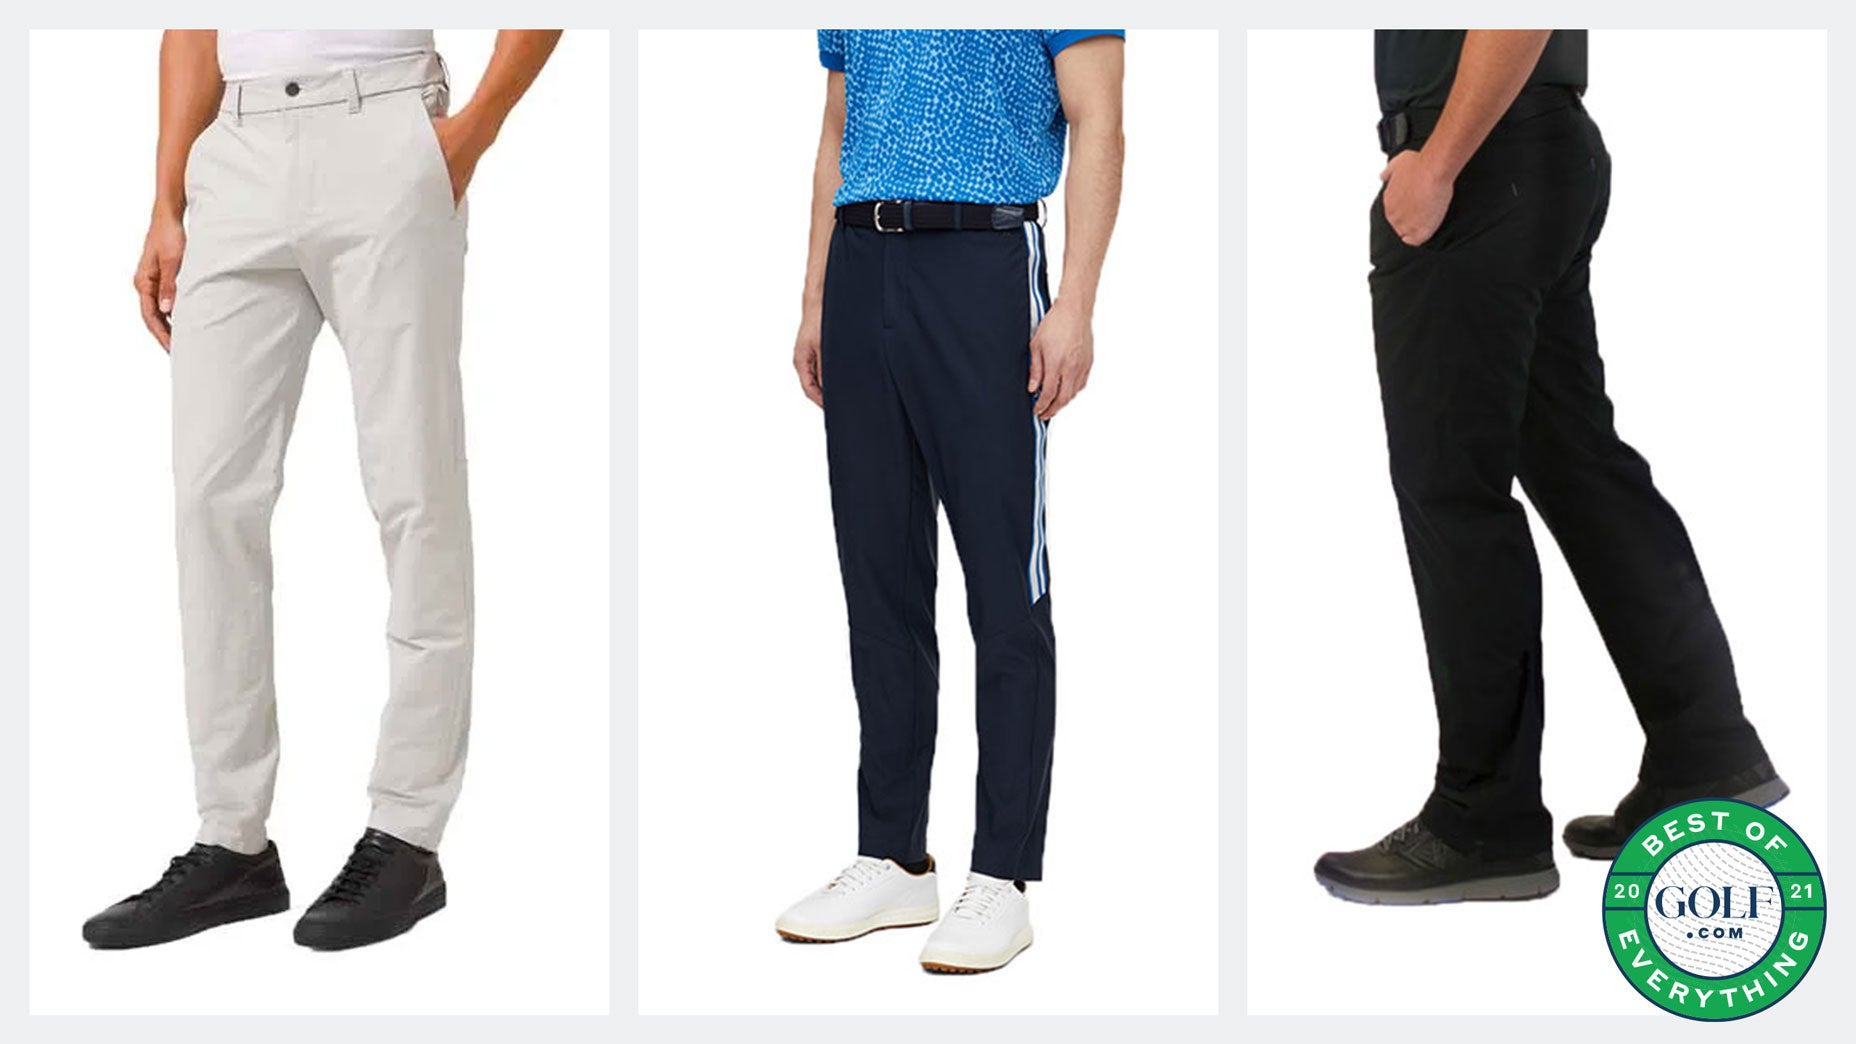 Best golf pants you can buy